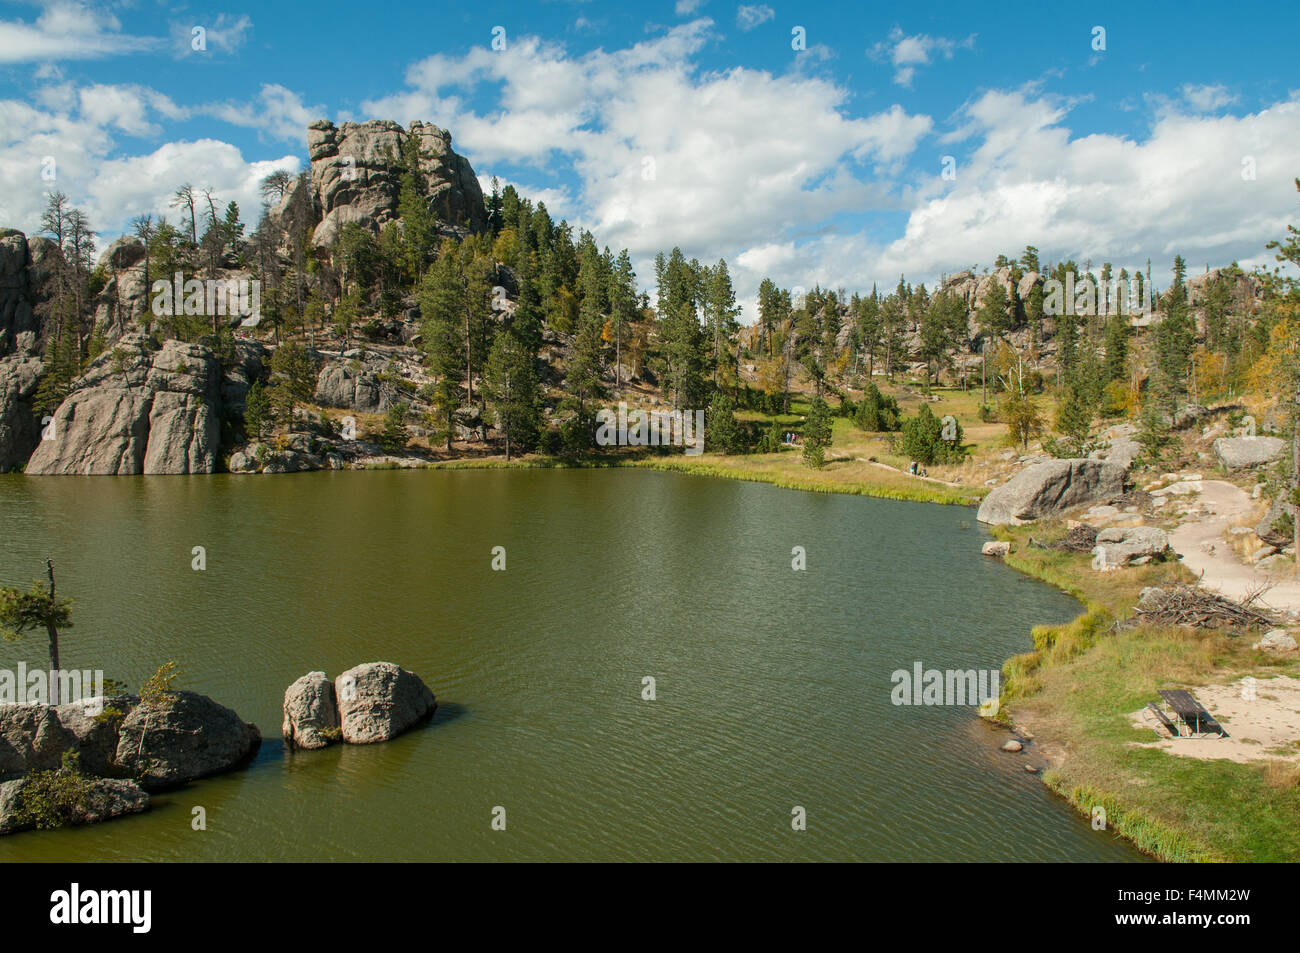 Sylvan Lake, Custer State Park, South Dakota, USA - Stock Image